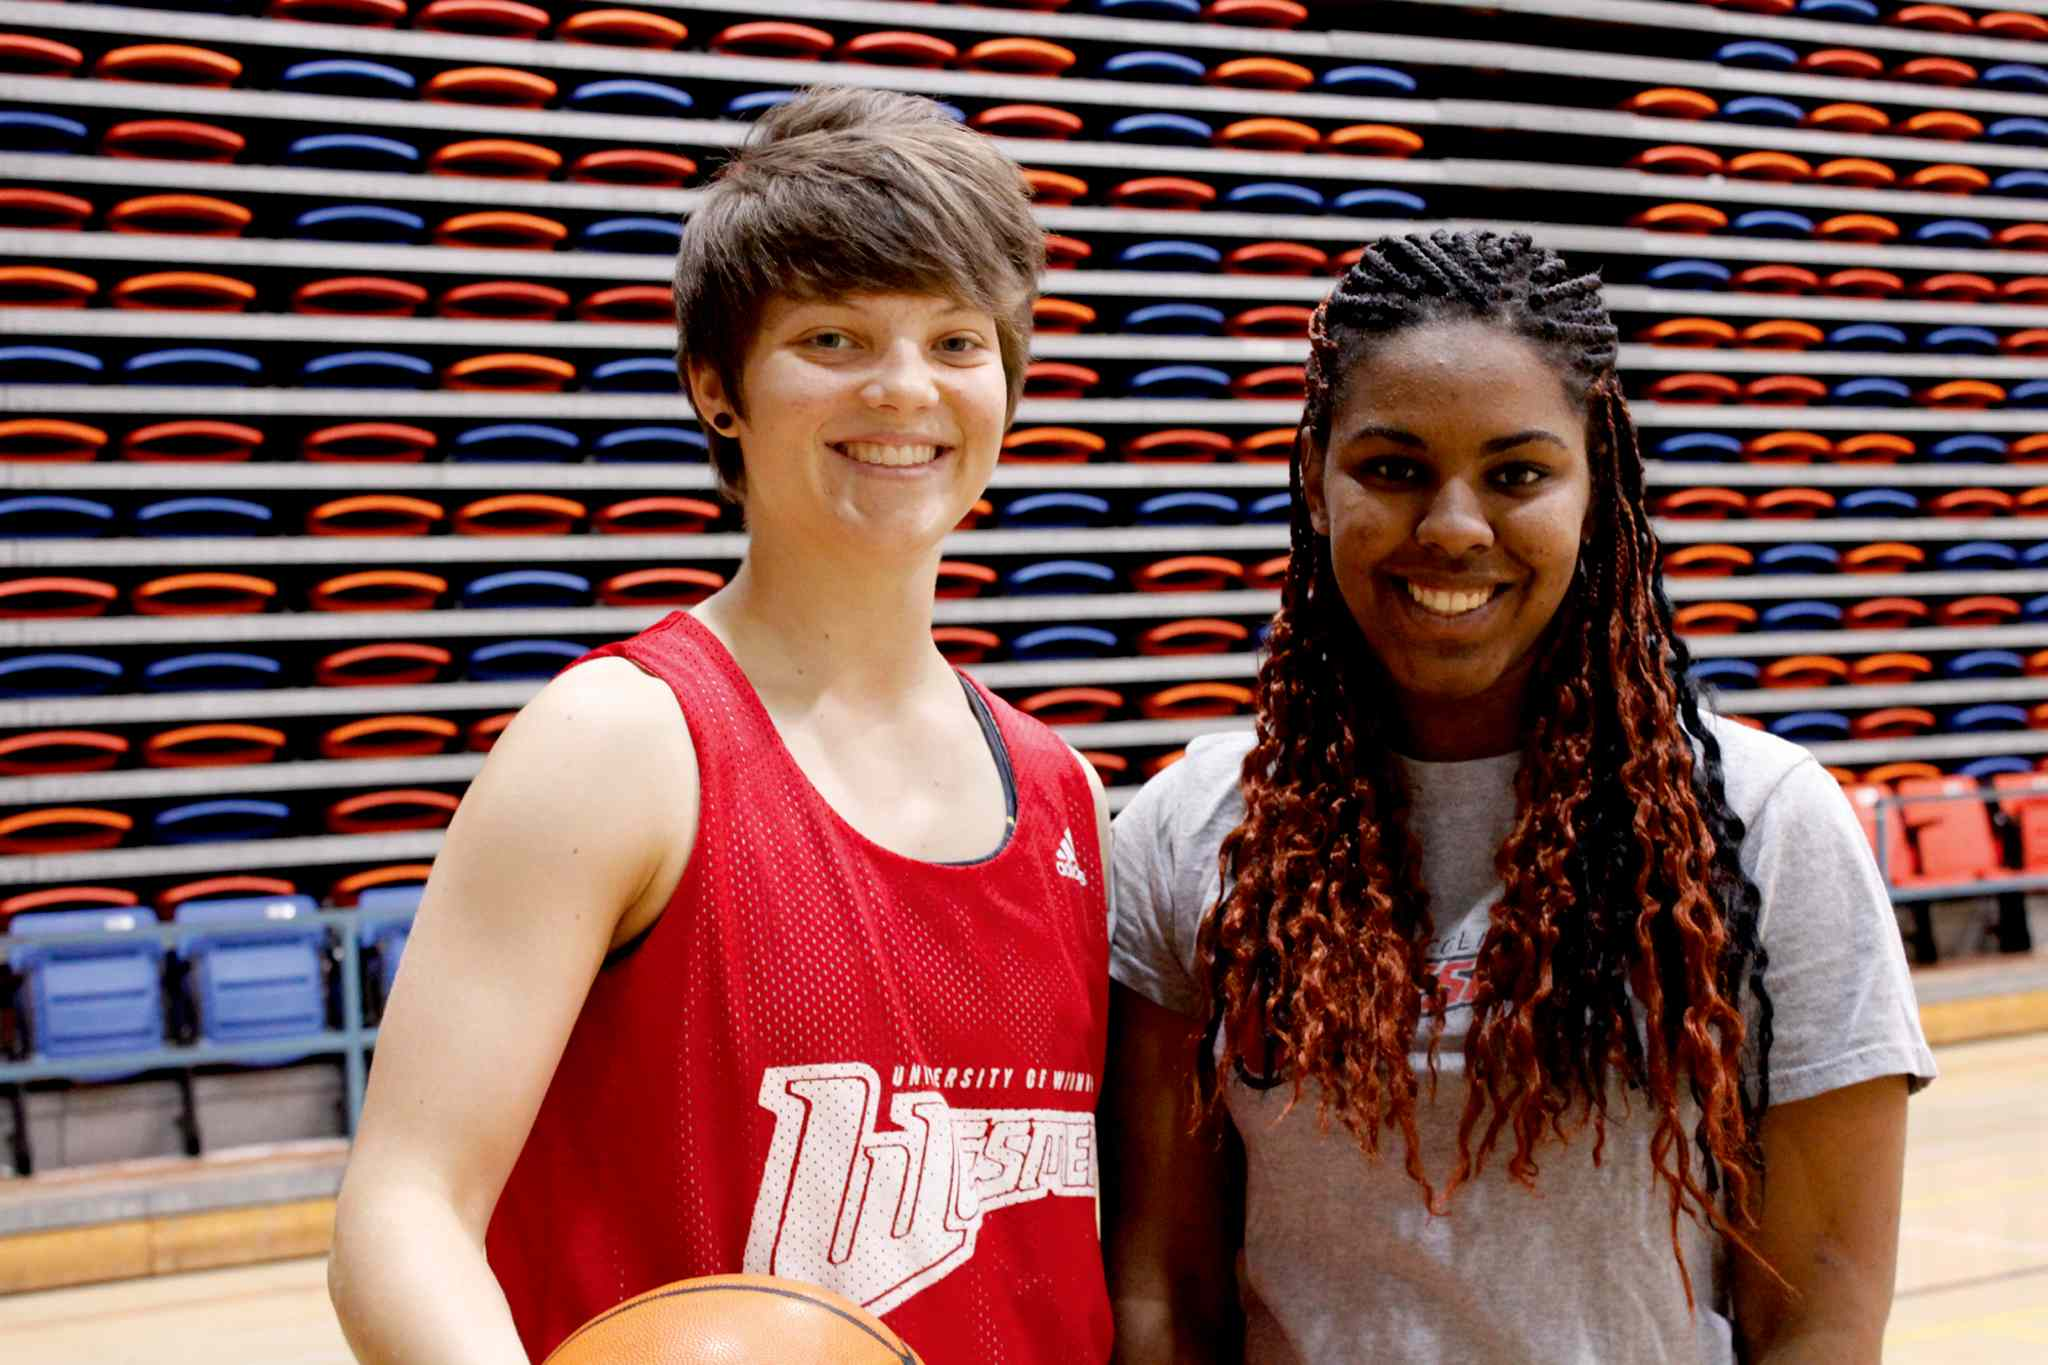 Kerri Kuzbyt (left) is one of the I Can Score coaches that instructed young basketball players like Kyla-Alexis Bailey (right) last year.